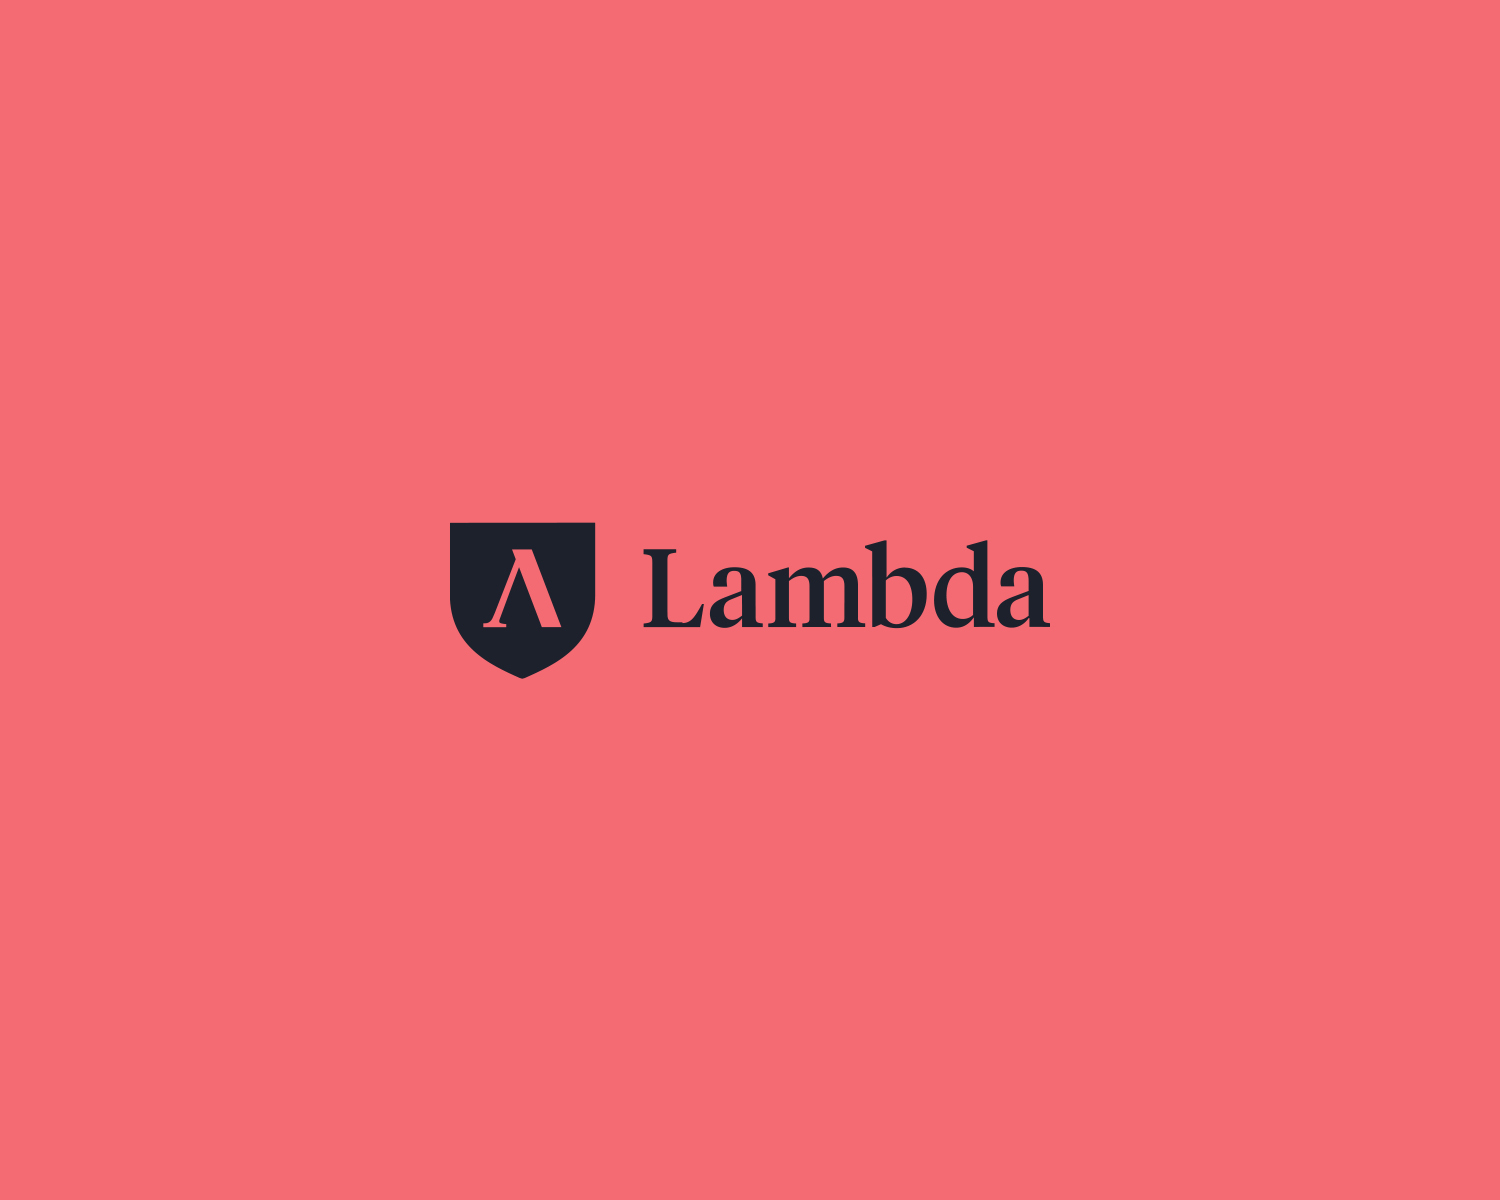 Lambda logo on red background